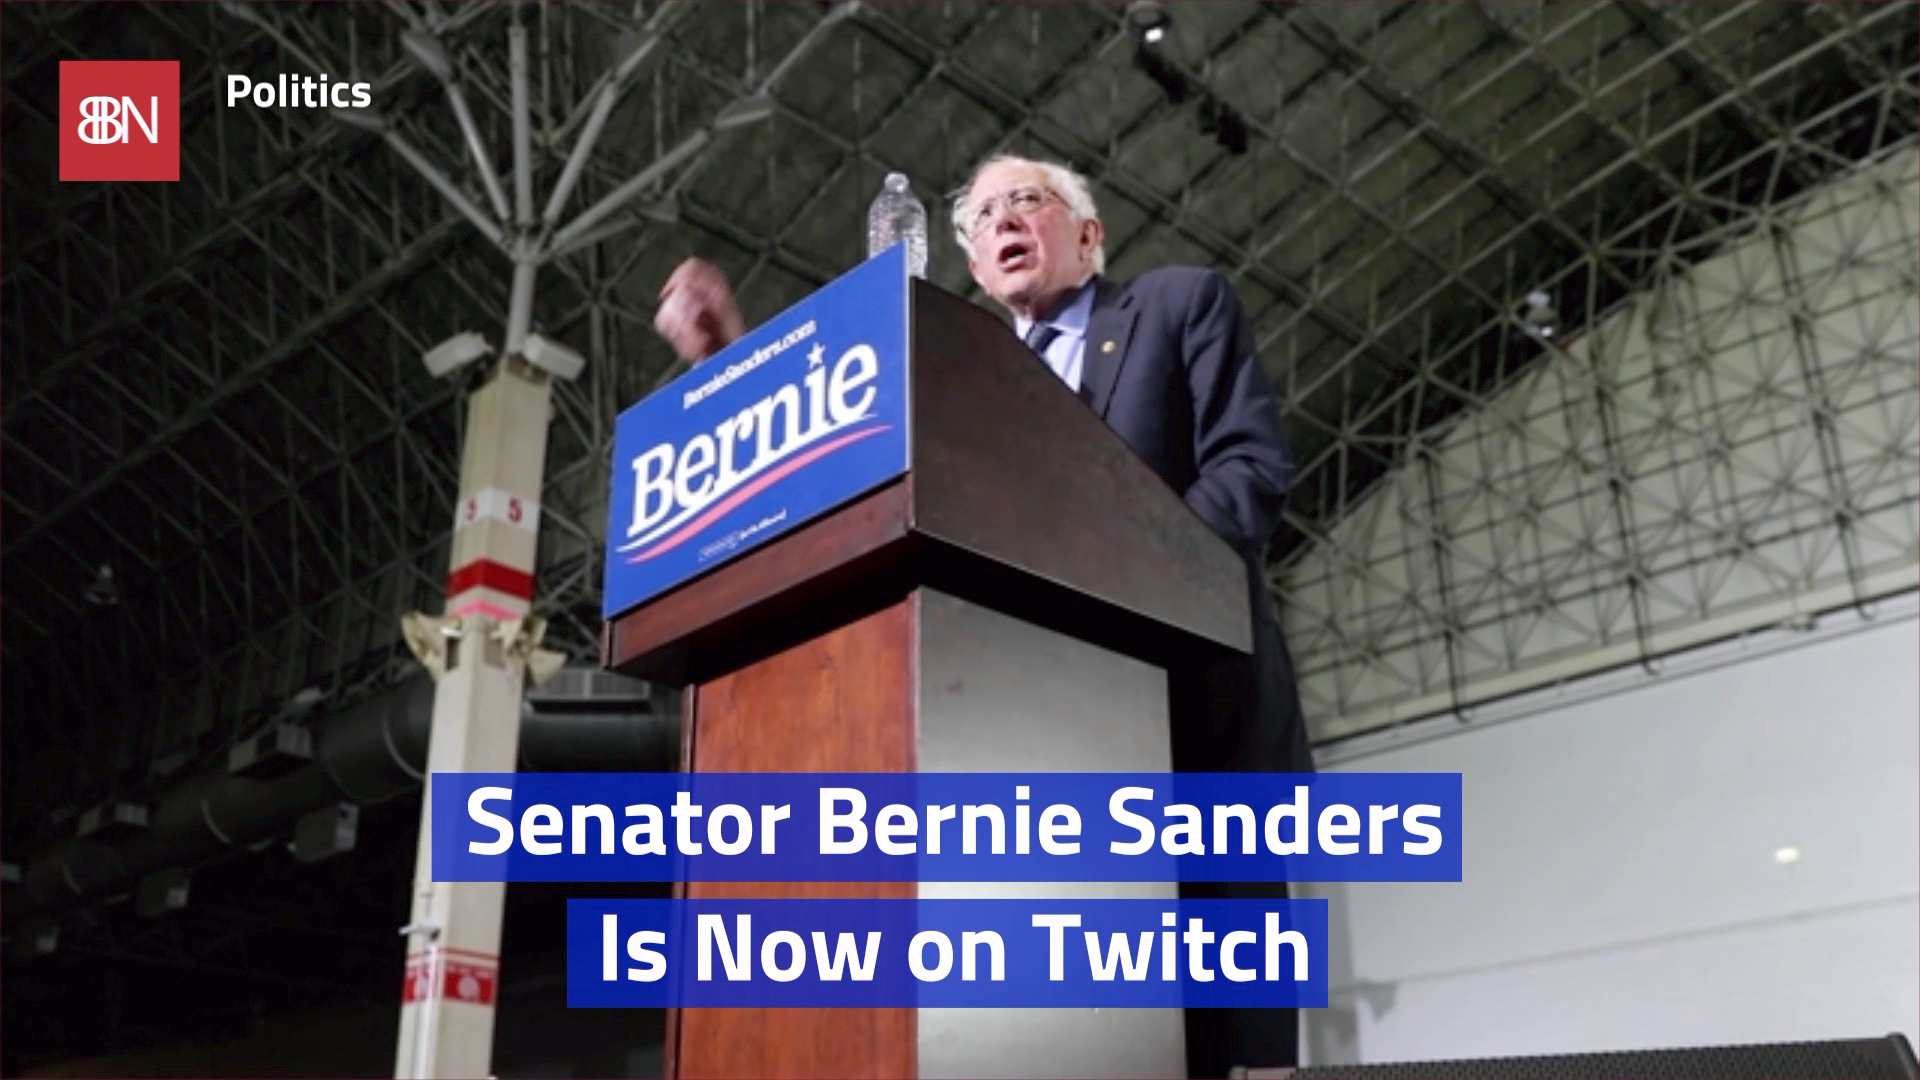 Bernie Sanders Appeals To The Gamers On Twitch